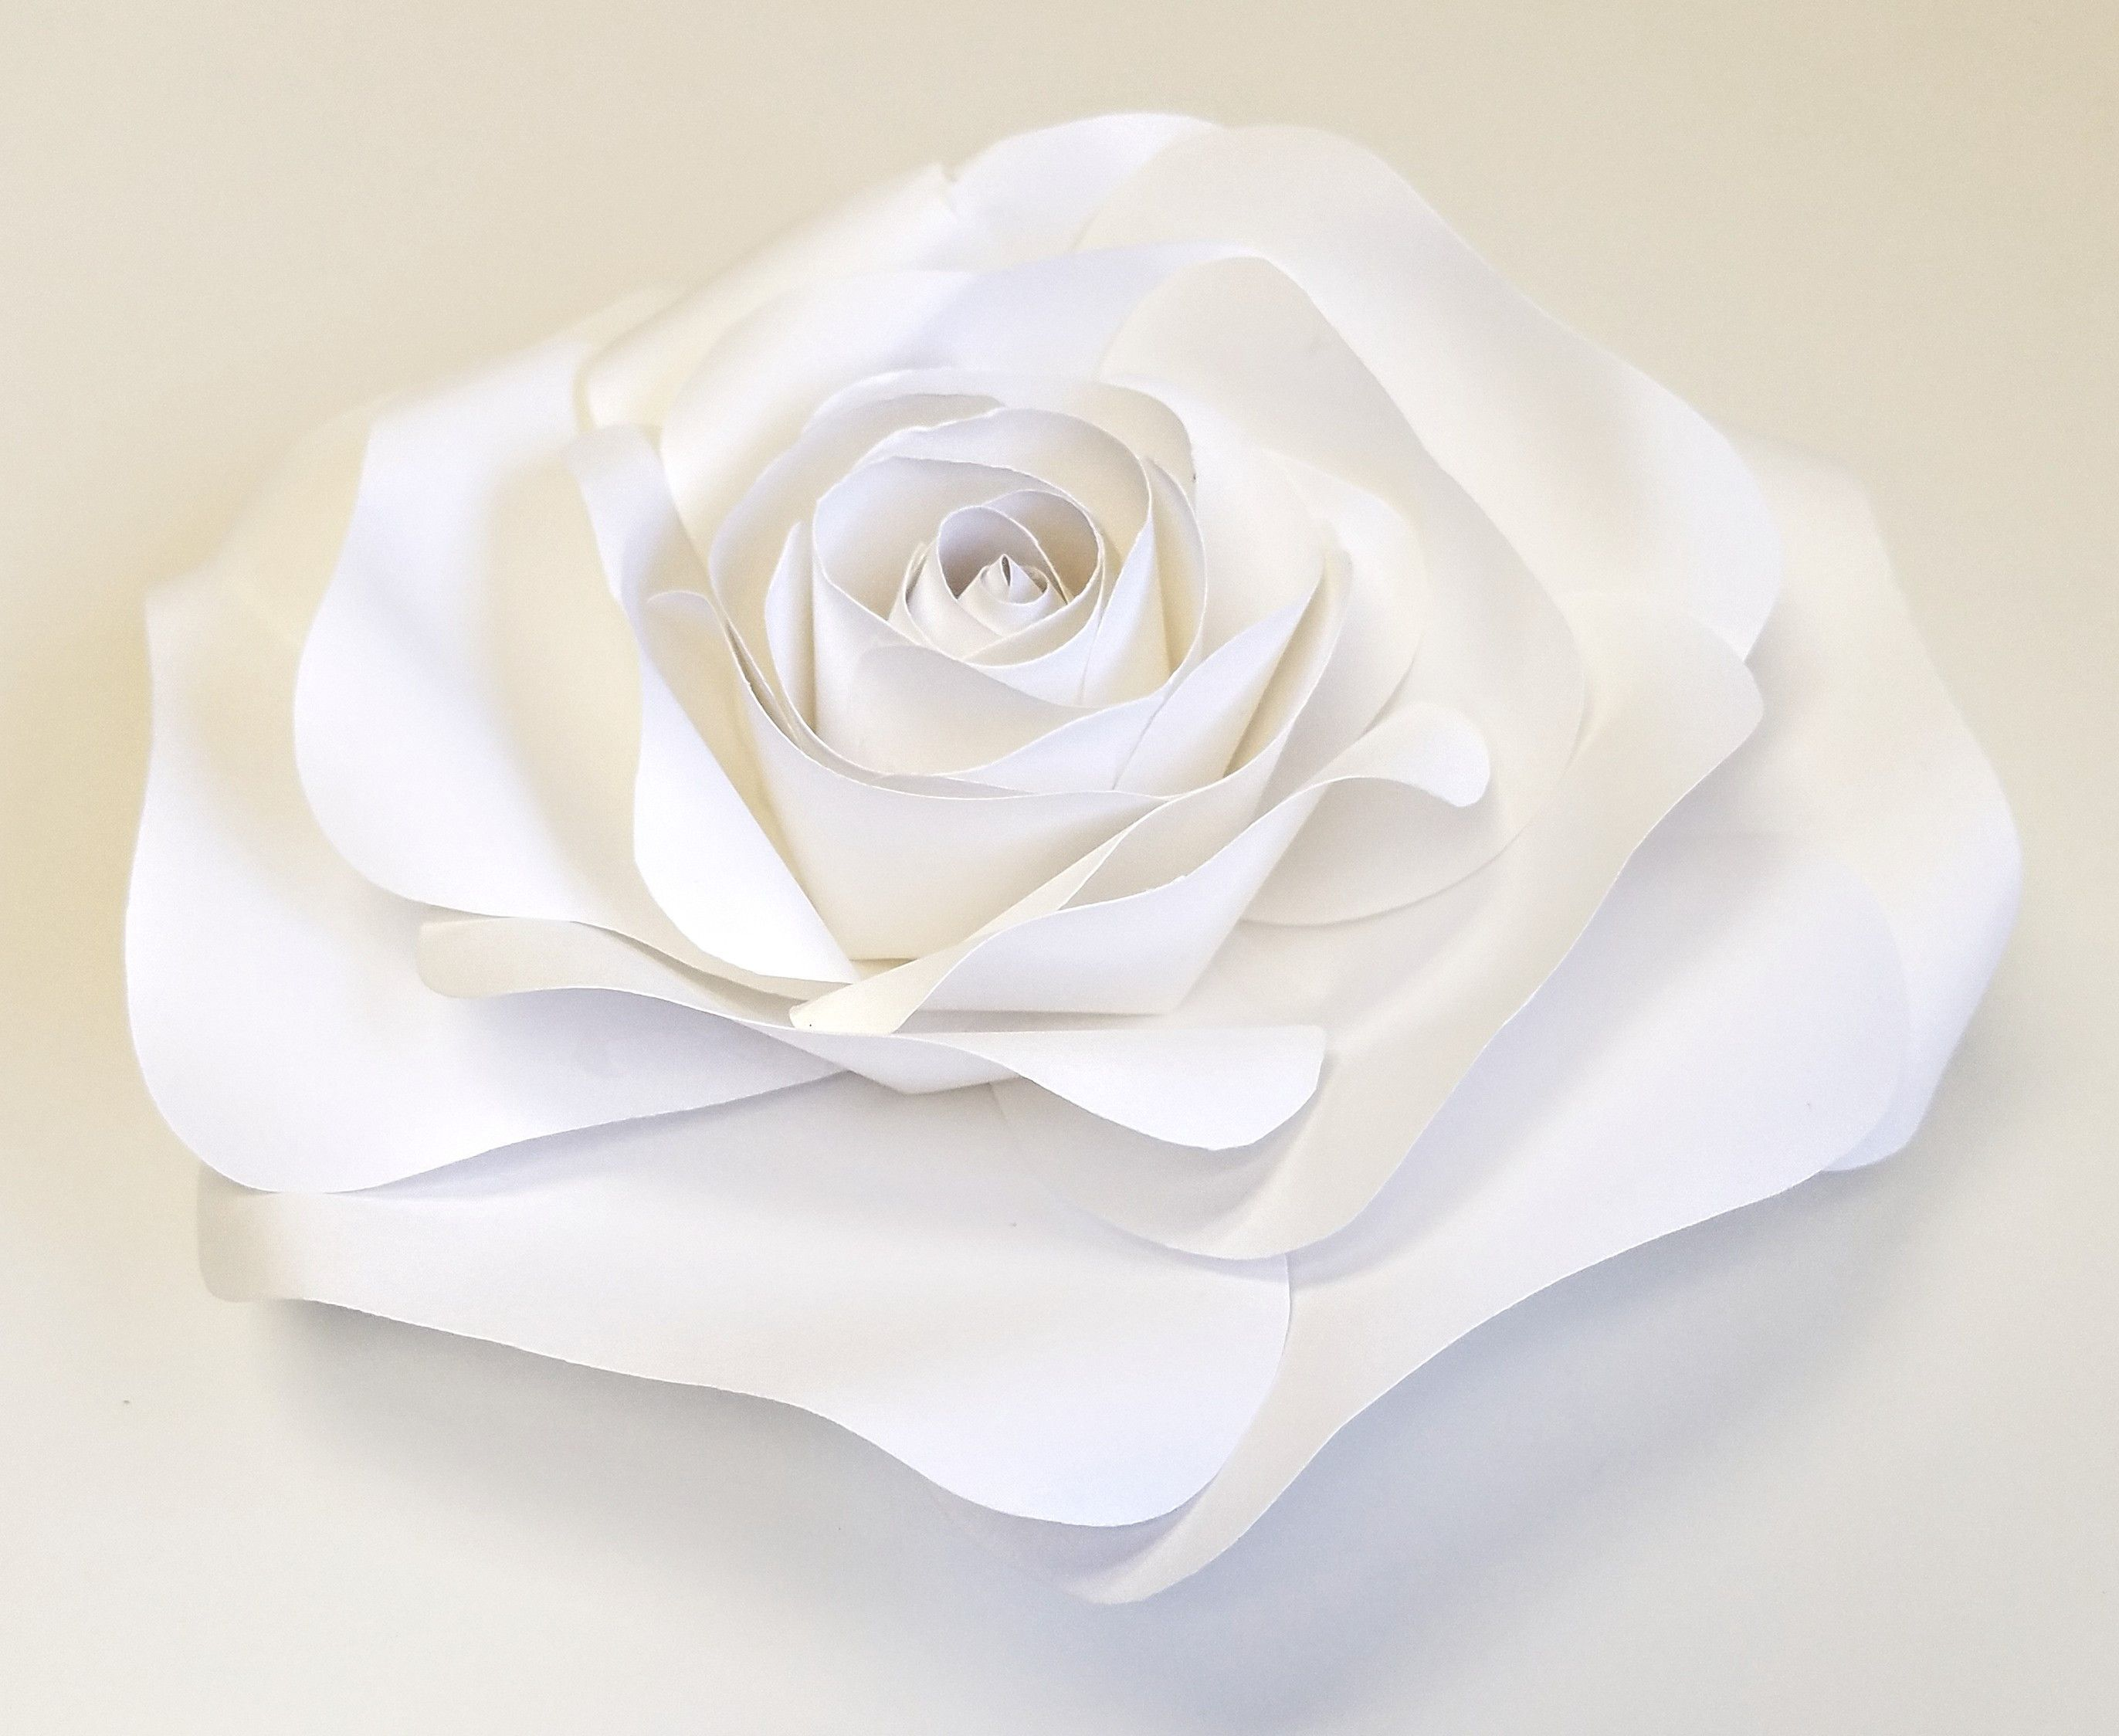 Handmade wedding decorations paper  Handmade Giant Paper Flower  cm  inch White  Products